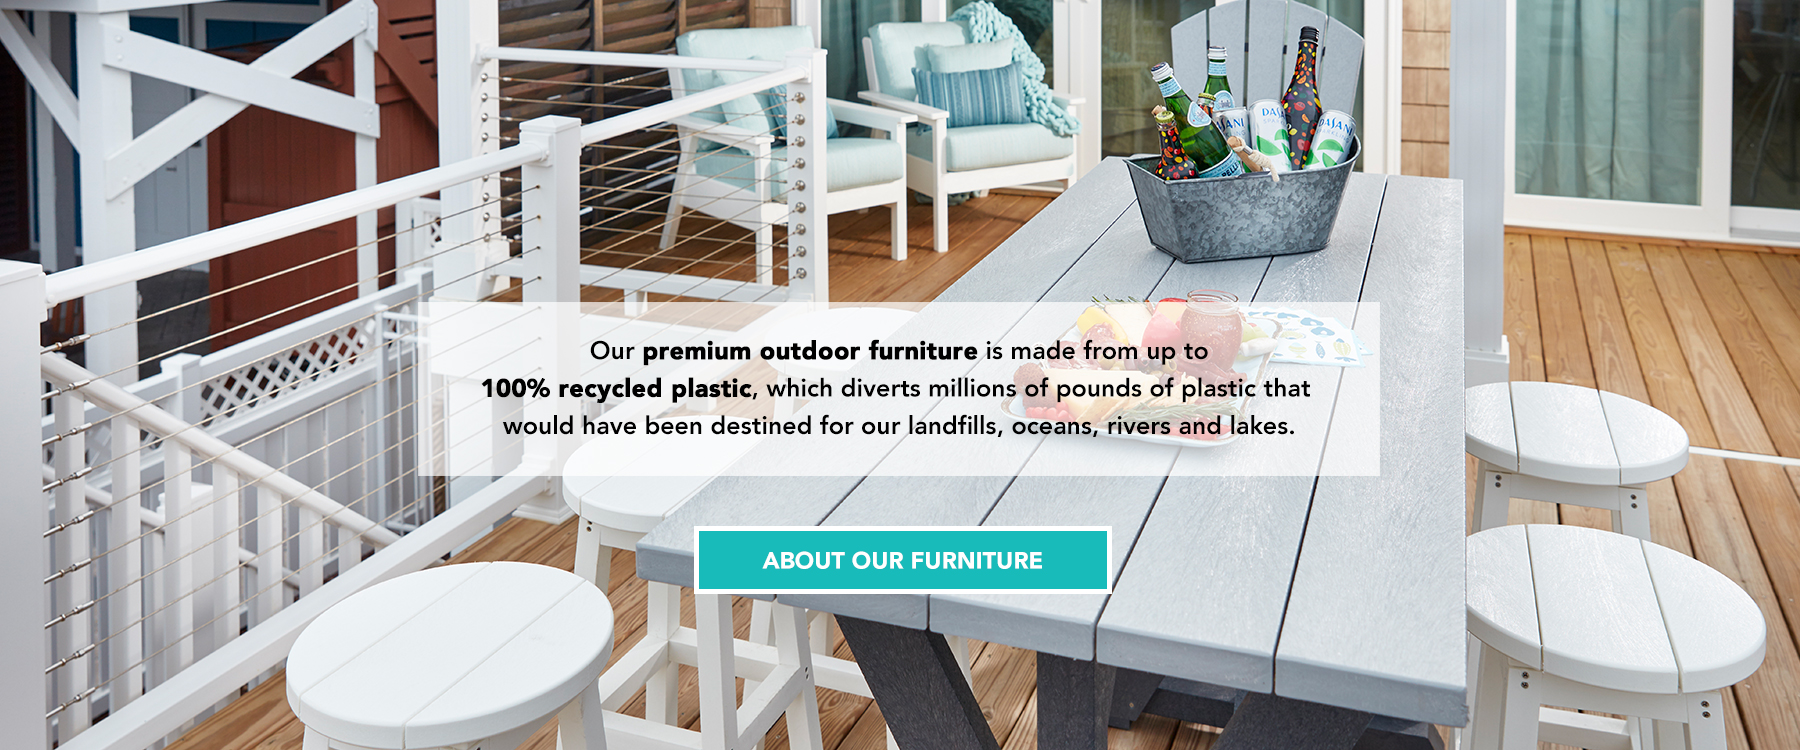 about our furniture